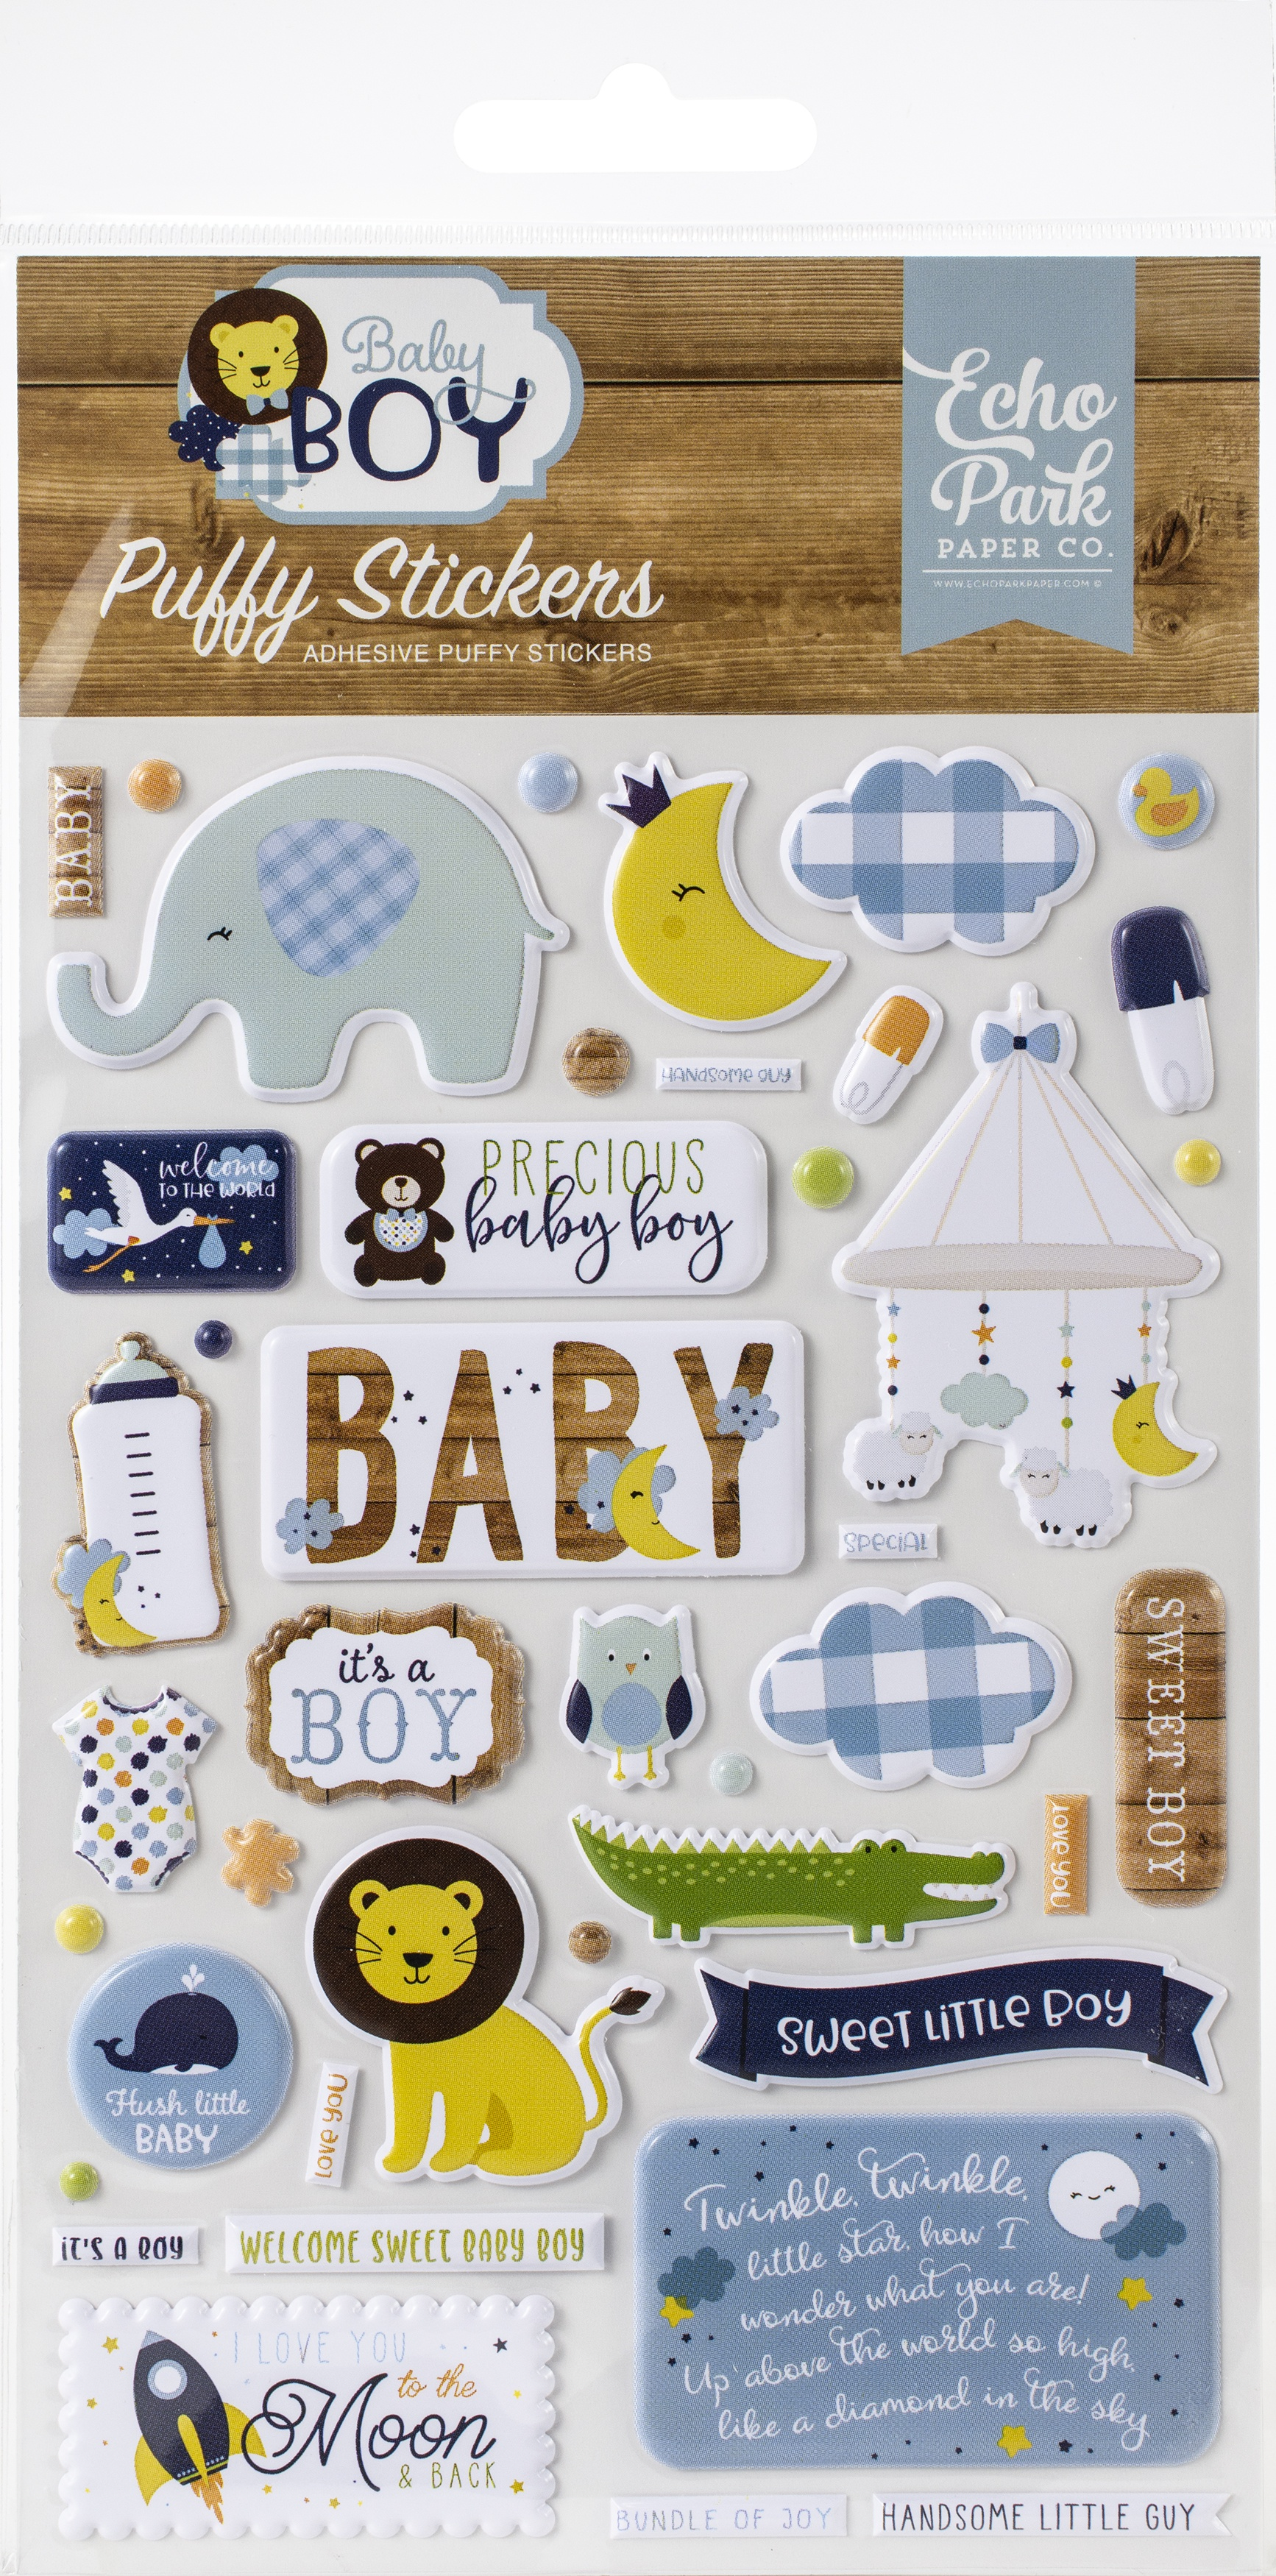 Baby Boy Puffy Stickers-